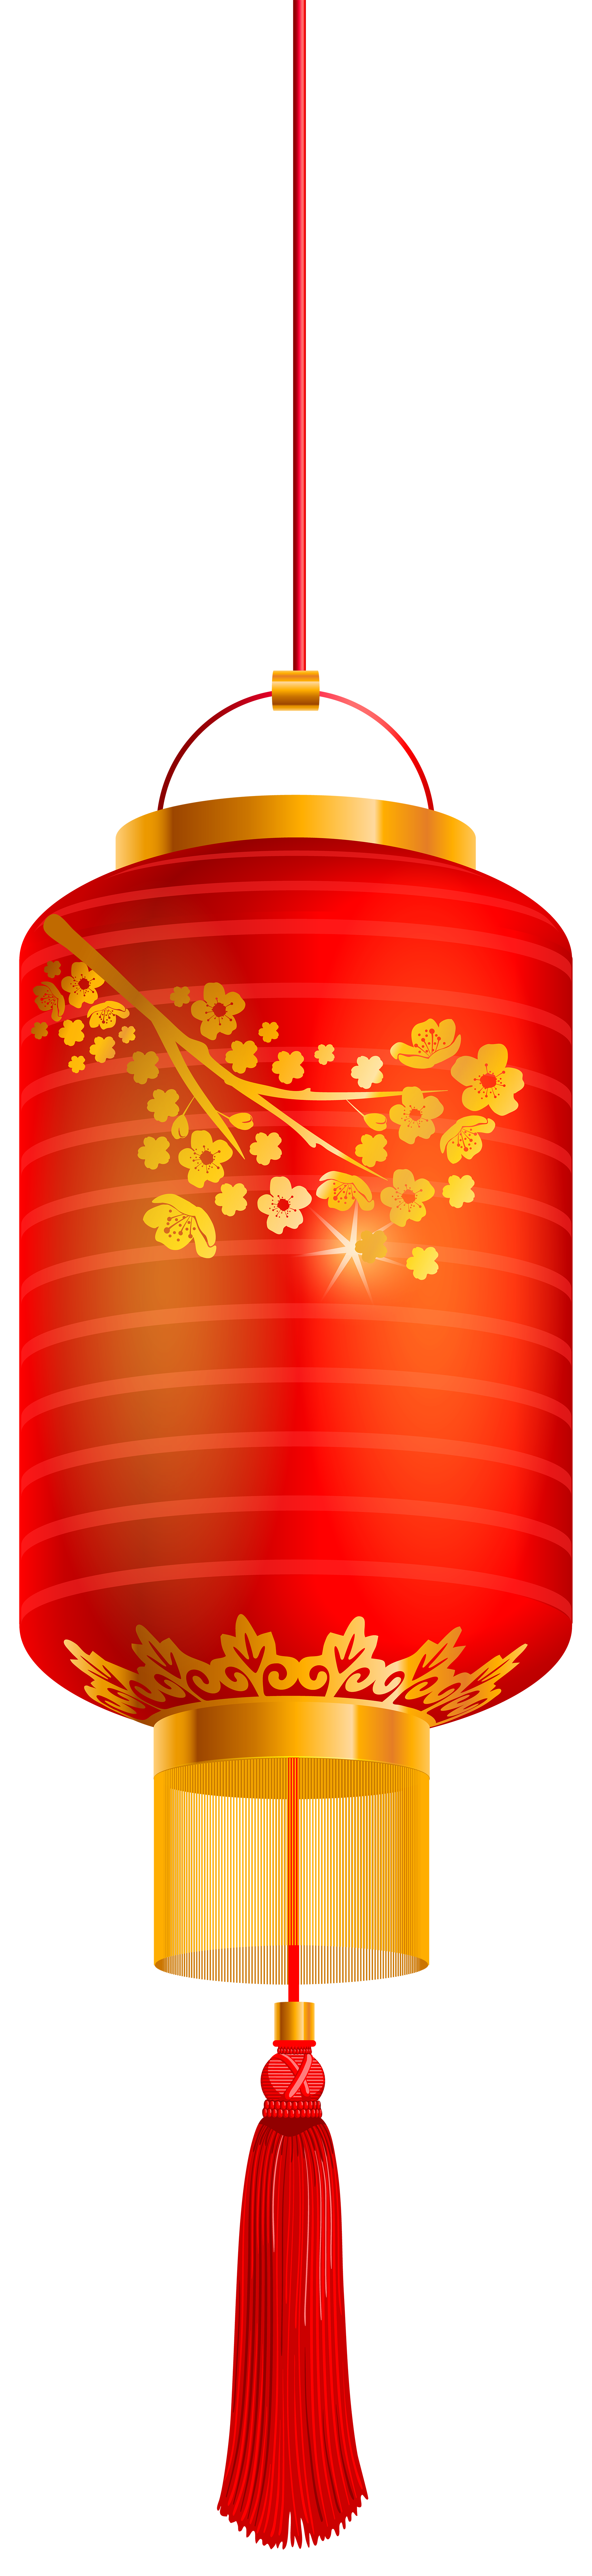 Chinese clipart lamp chinese. Lantern png clip art